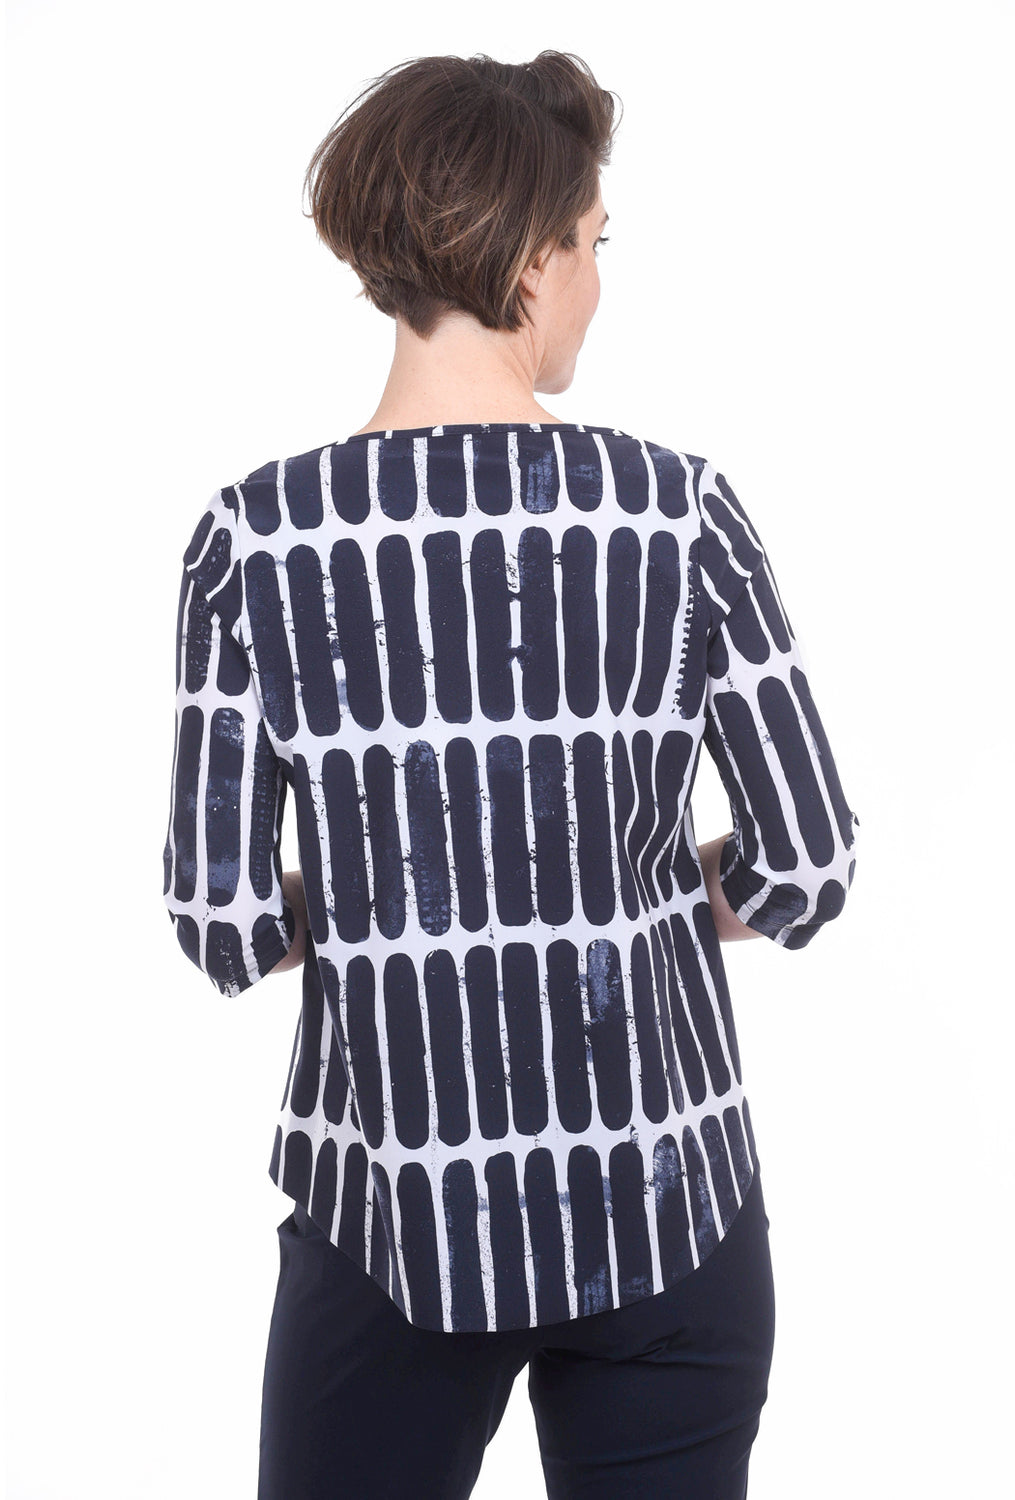 Porto Tavern Print Top, Deep Blue Pod